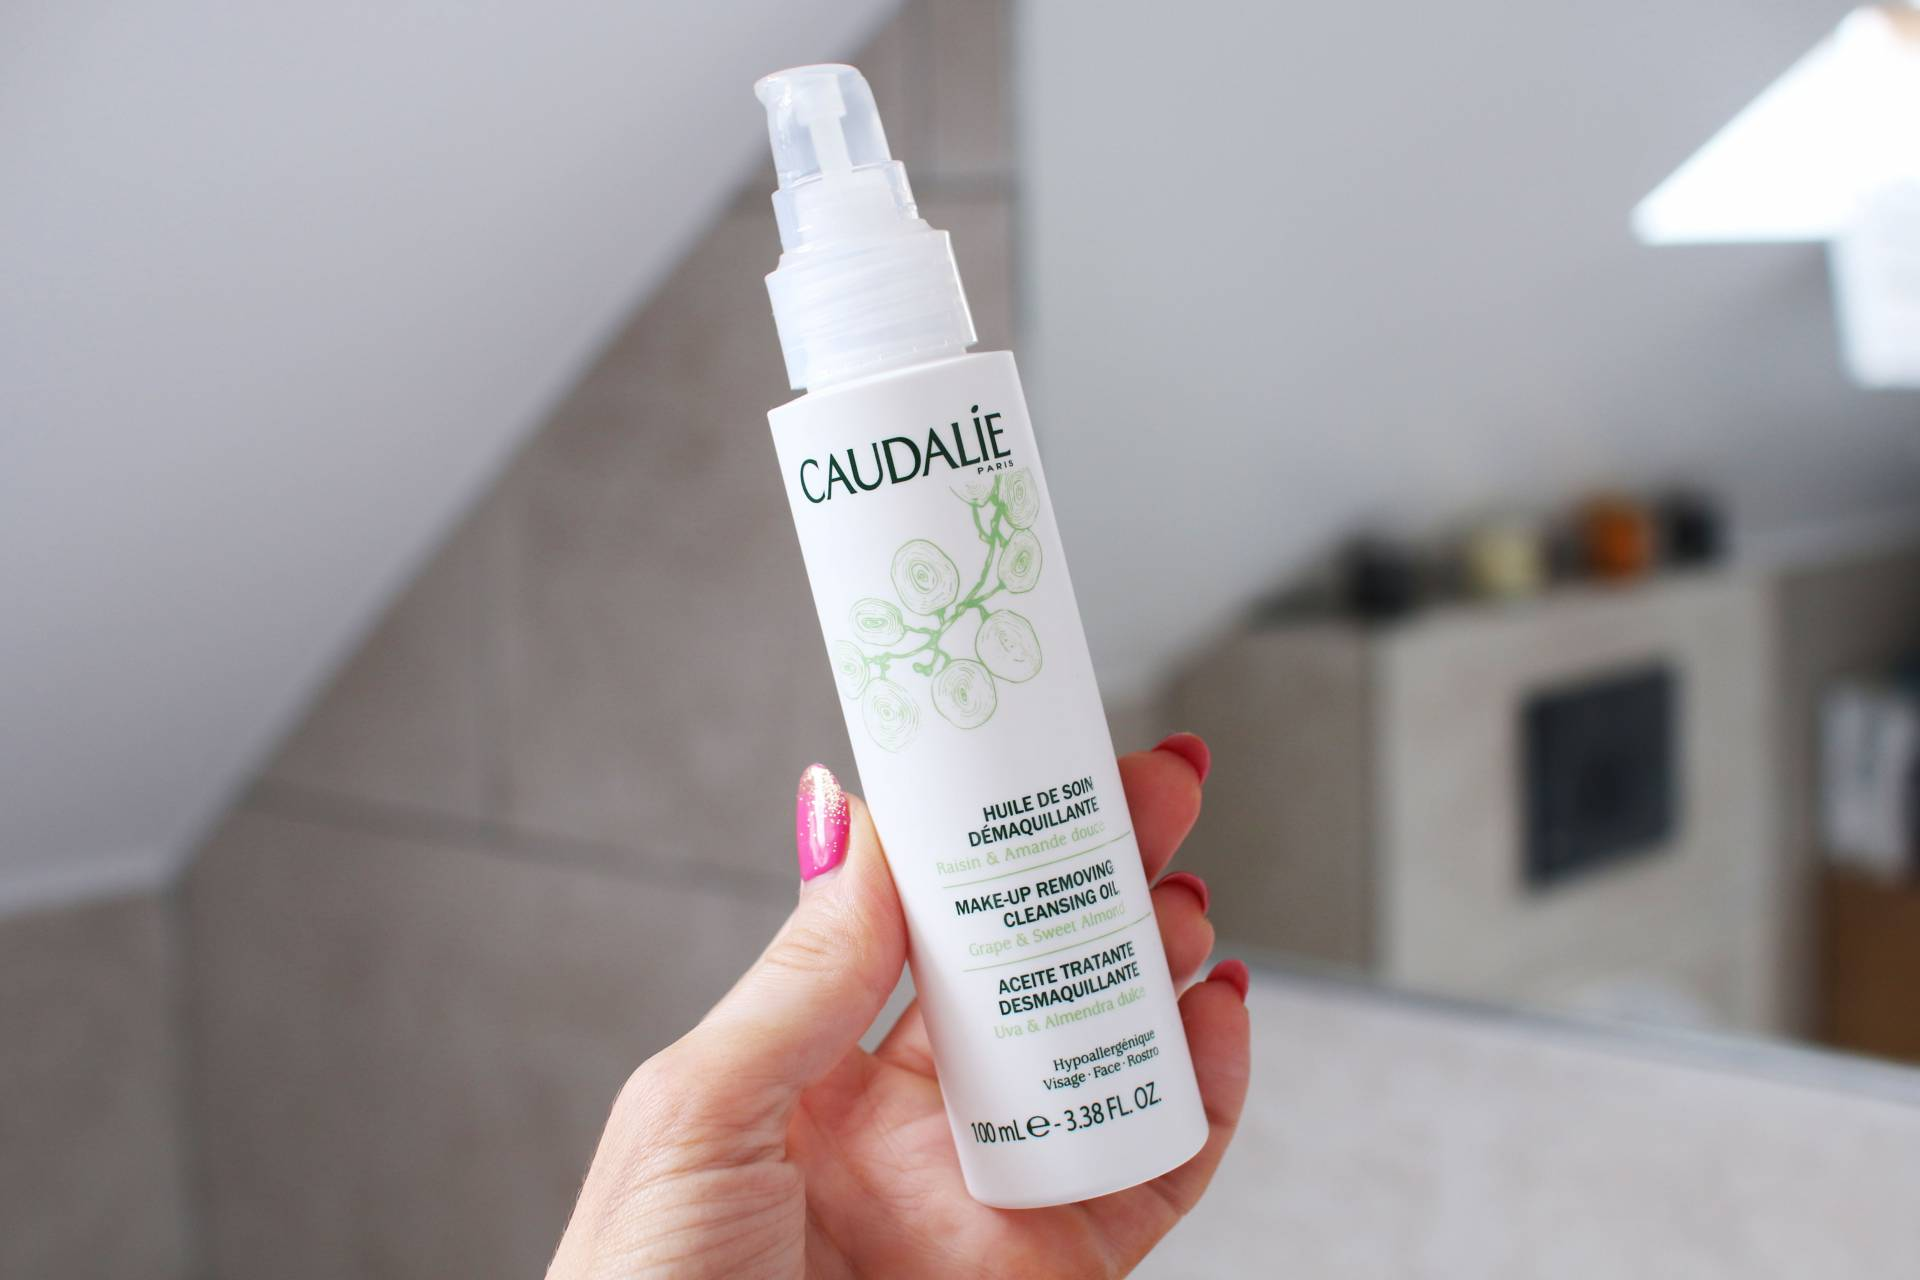 caudalie cleansing oil inthefrow